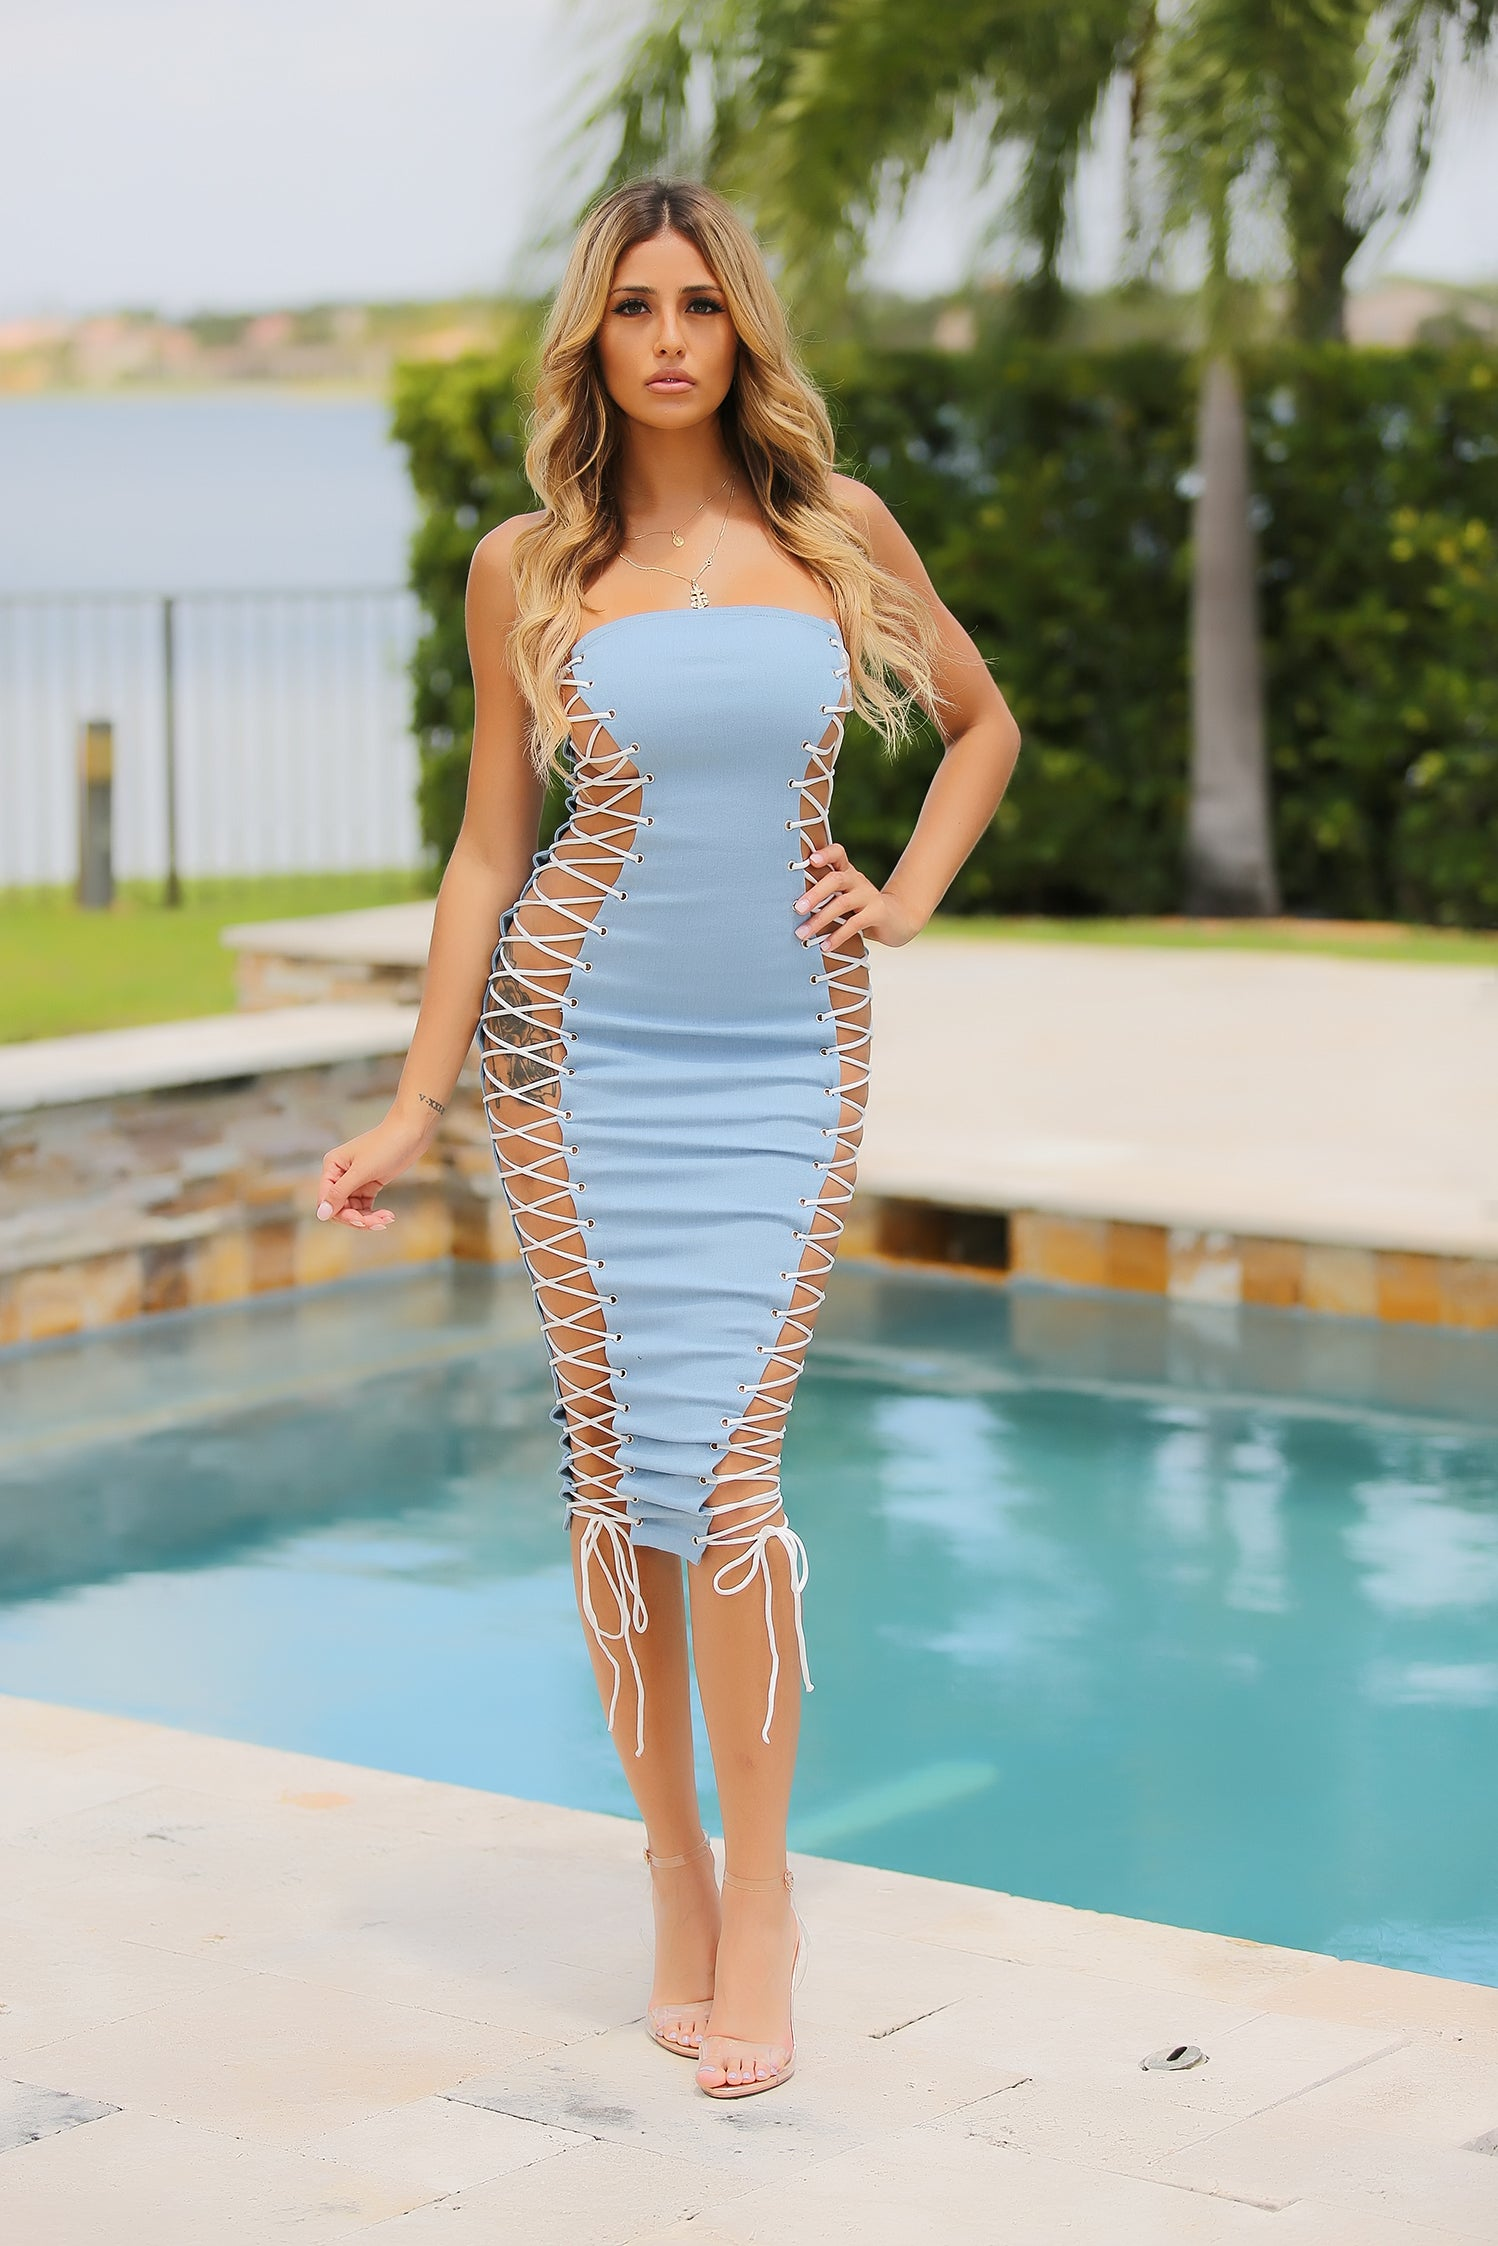 Katya - Denim Fantasy Lace Up Midi Dress - Semai House Of fashion